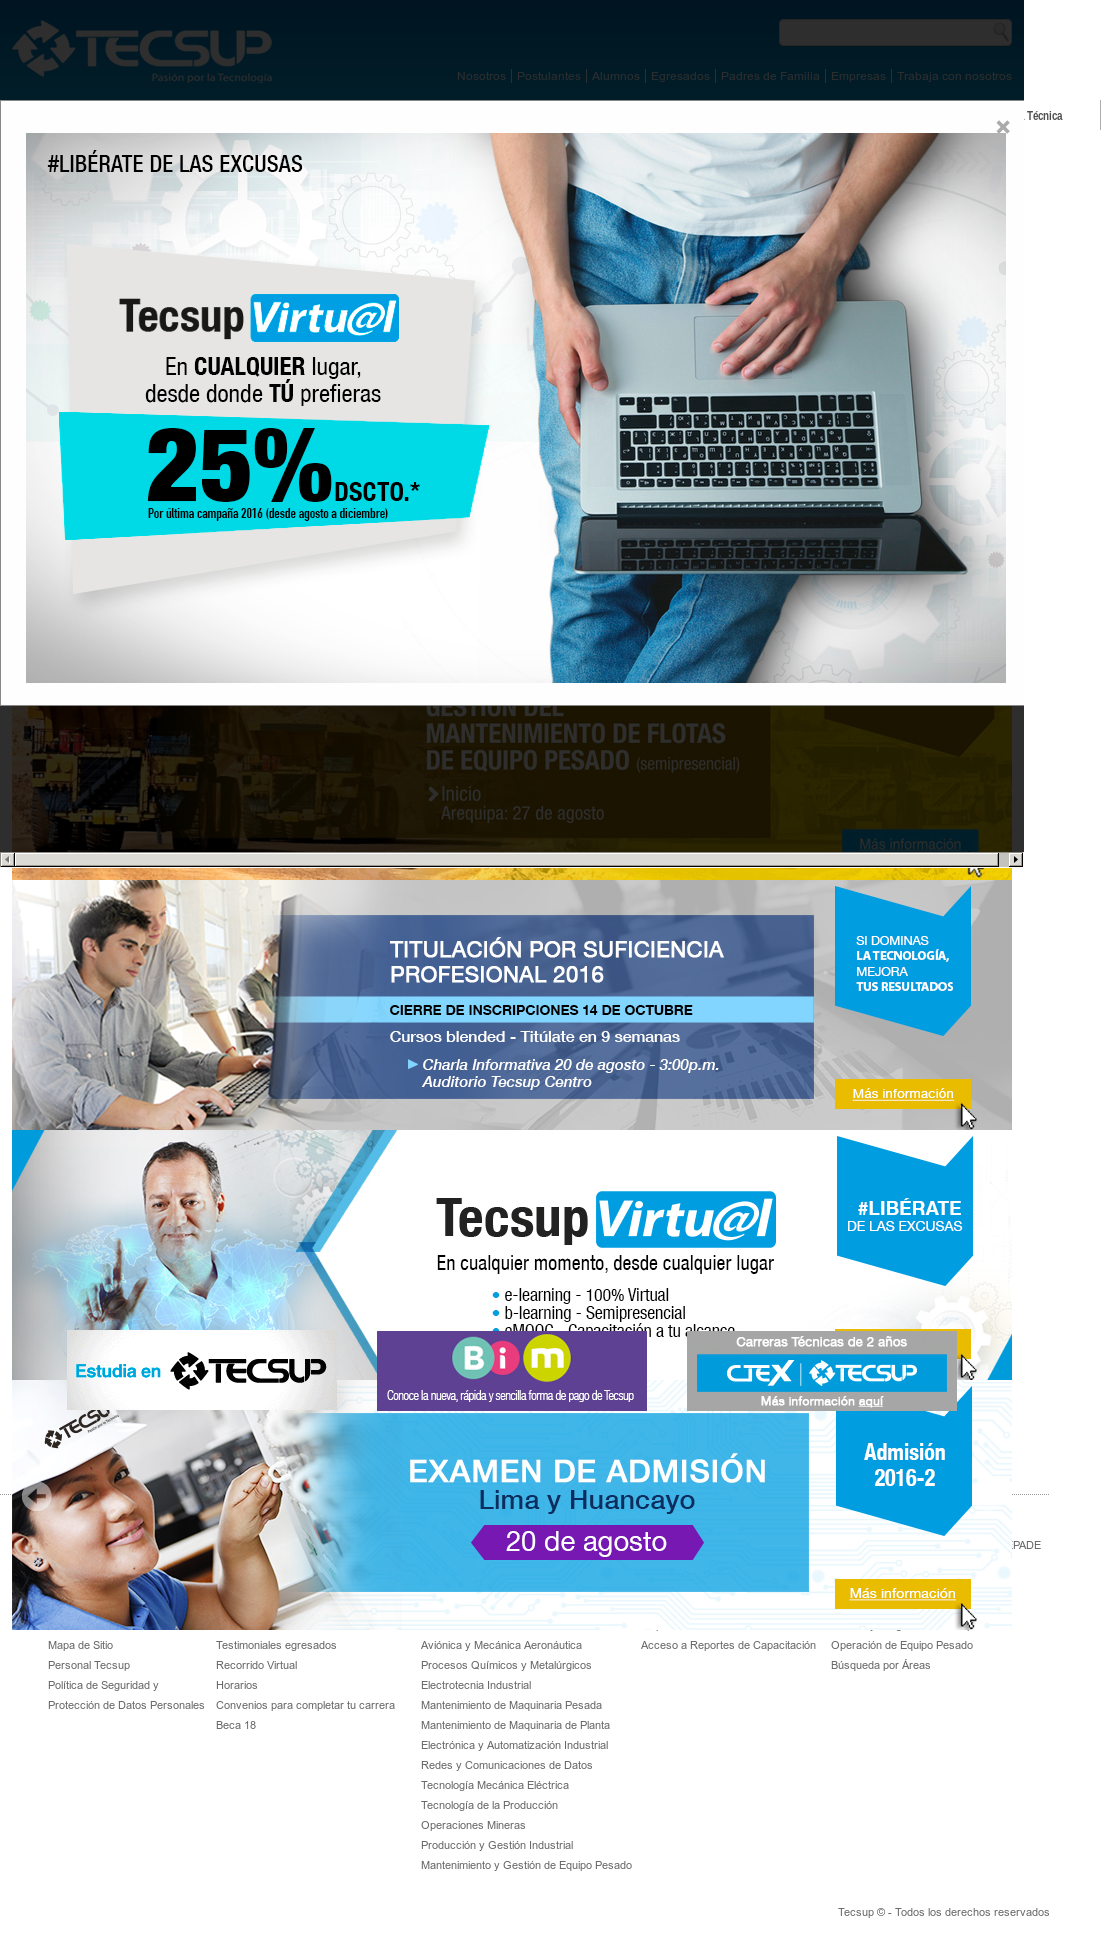 Tecsup S Competitors Revenue Number Of Employees Funding Acquisitions News Owler Company Profile